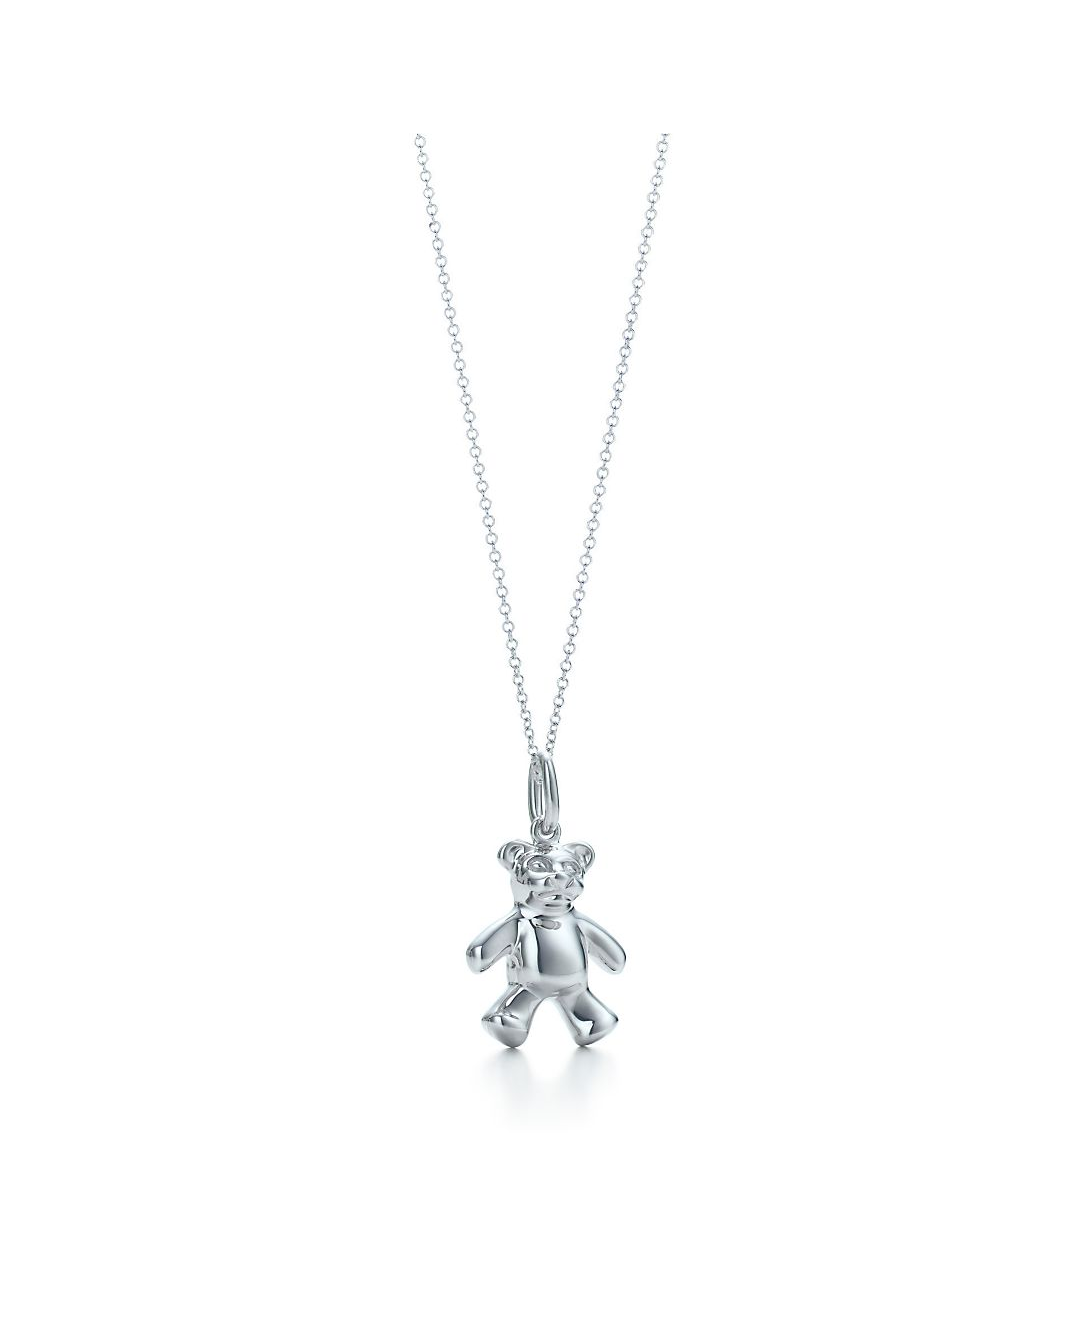 Teddy Bear Charm + Chain $200